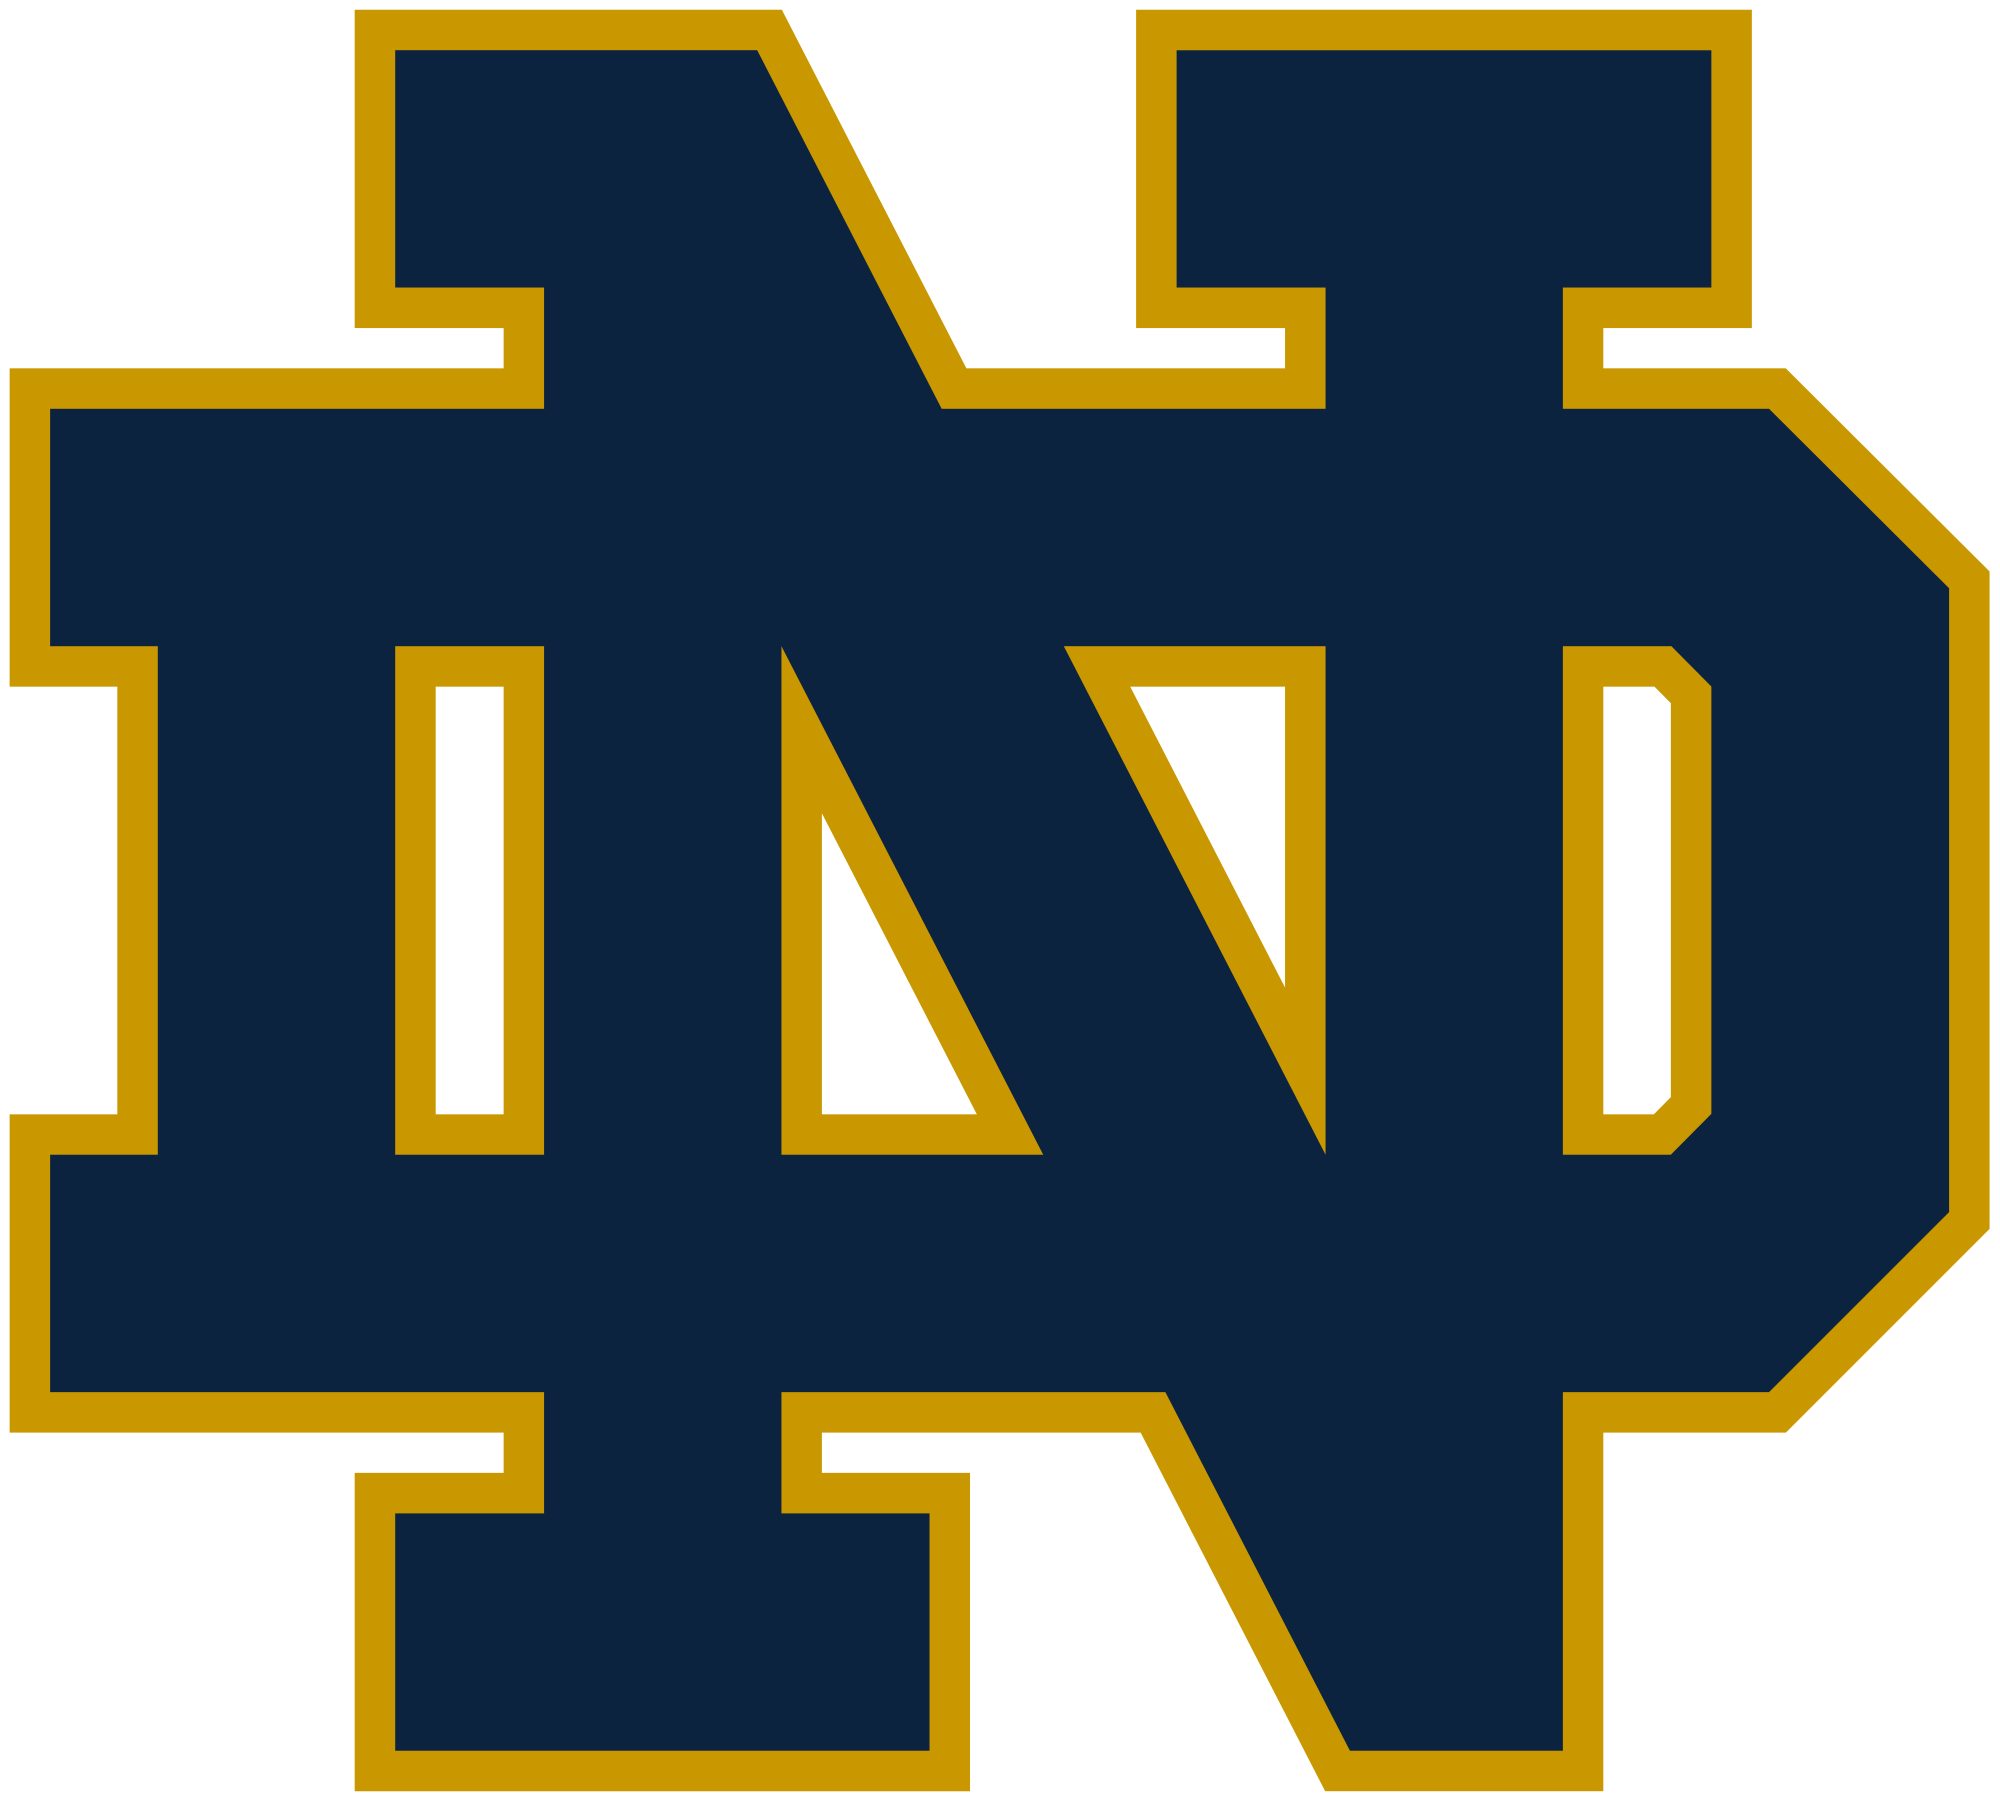 collection of notre. Fighting irish clipart football